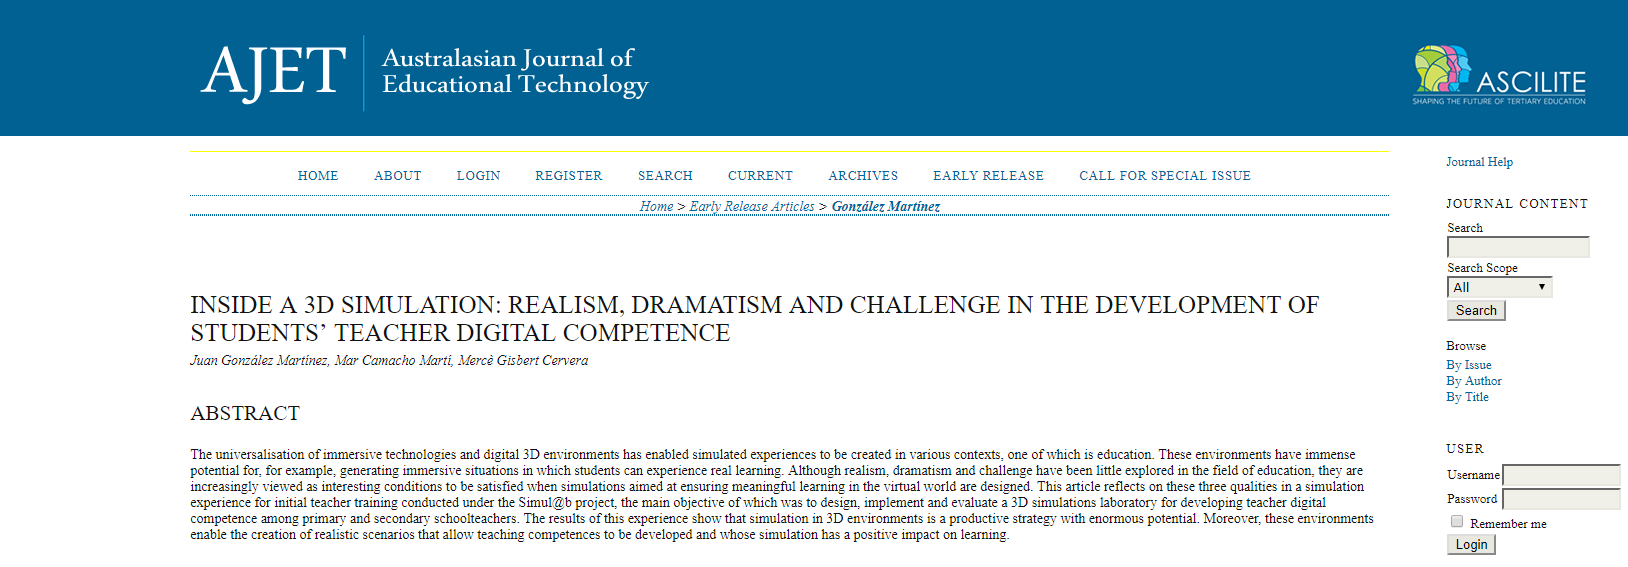 Nova publicació a Australasian Journal of Educational Technology